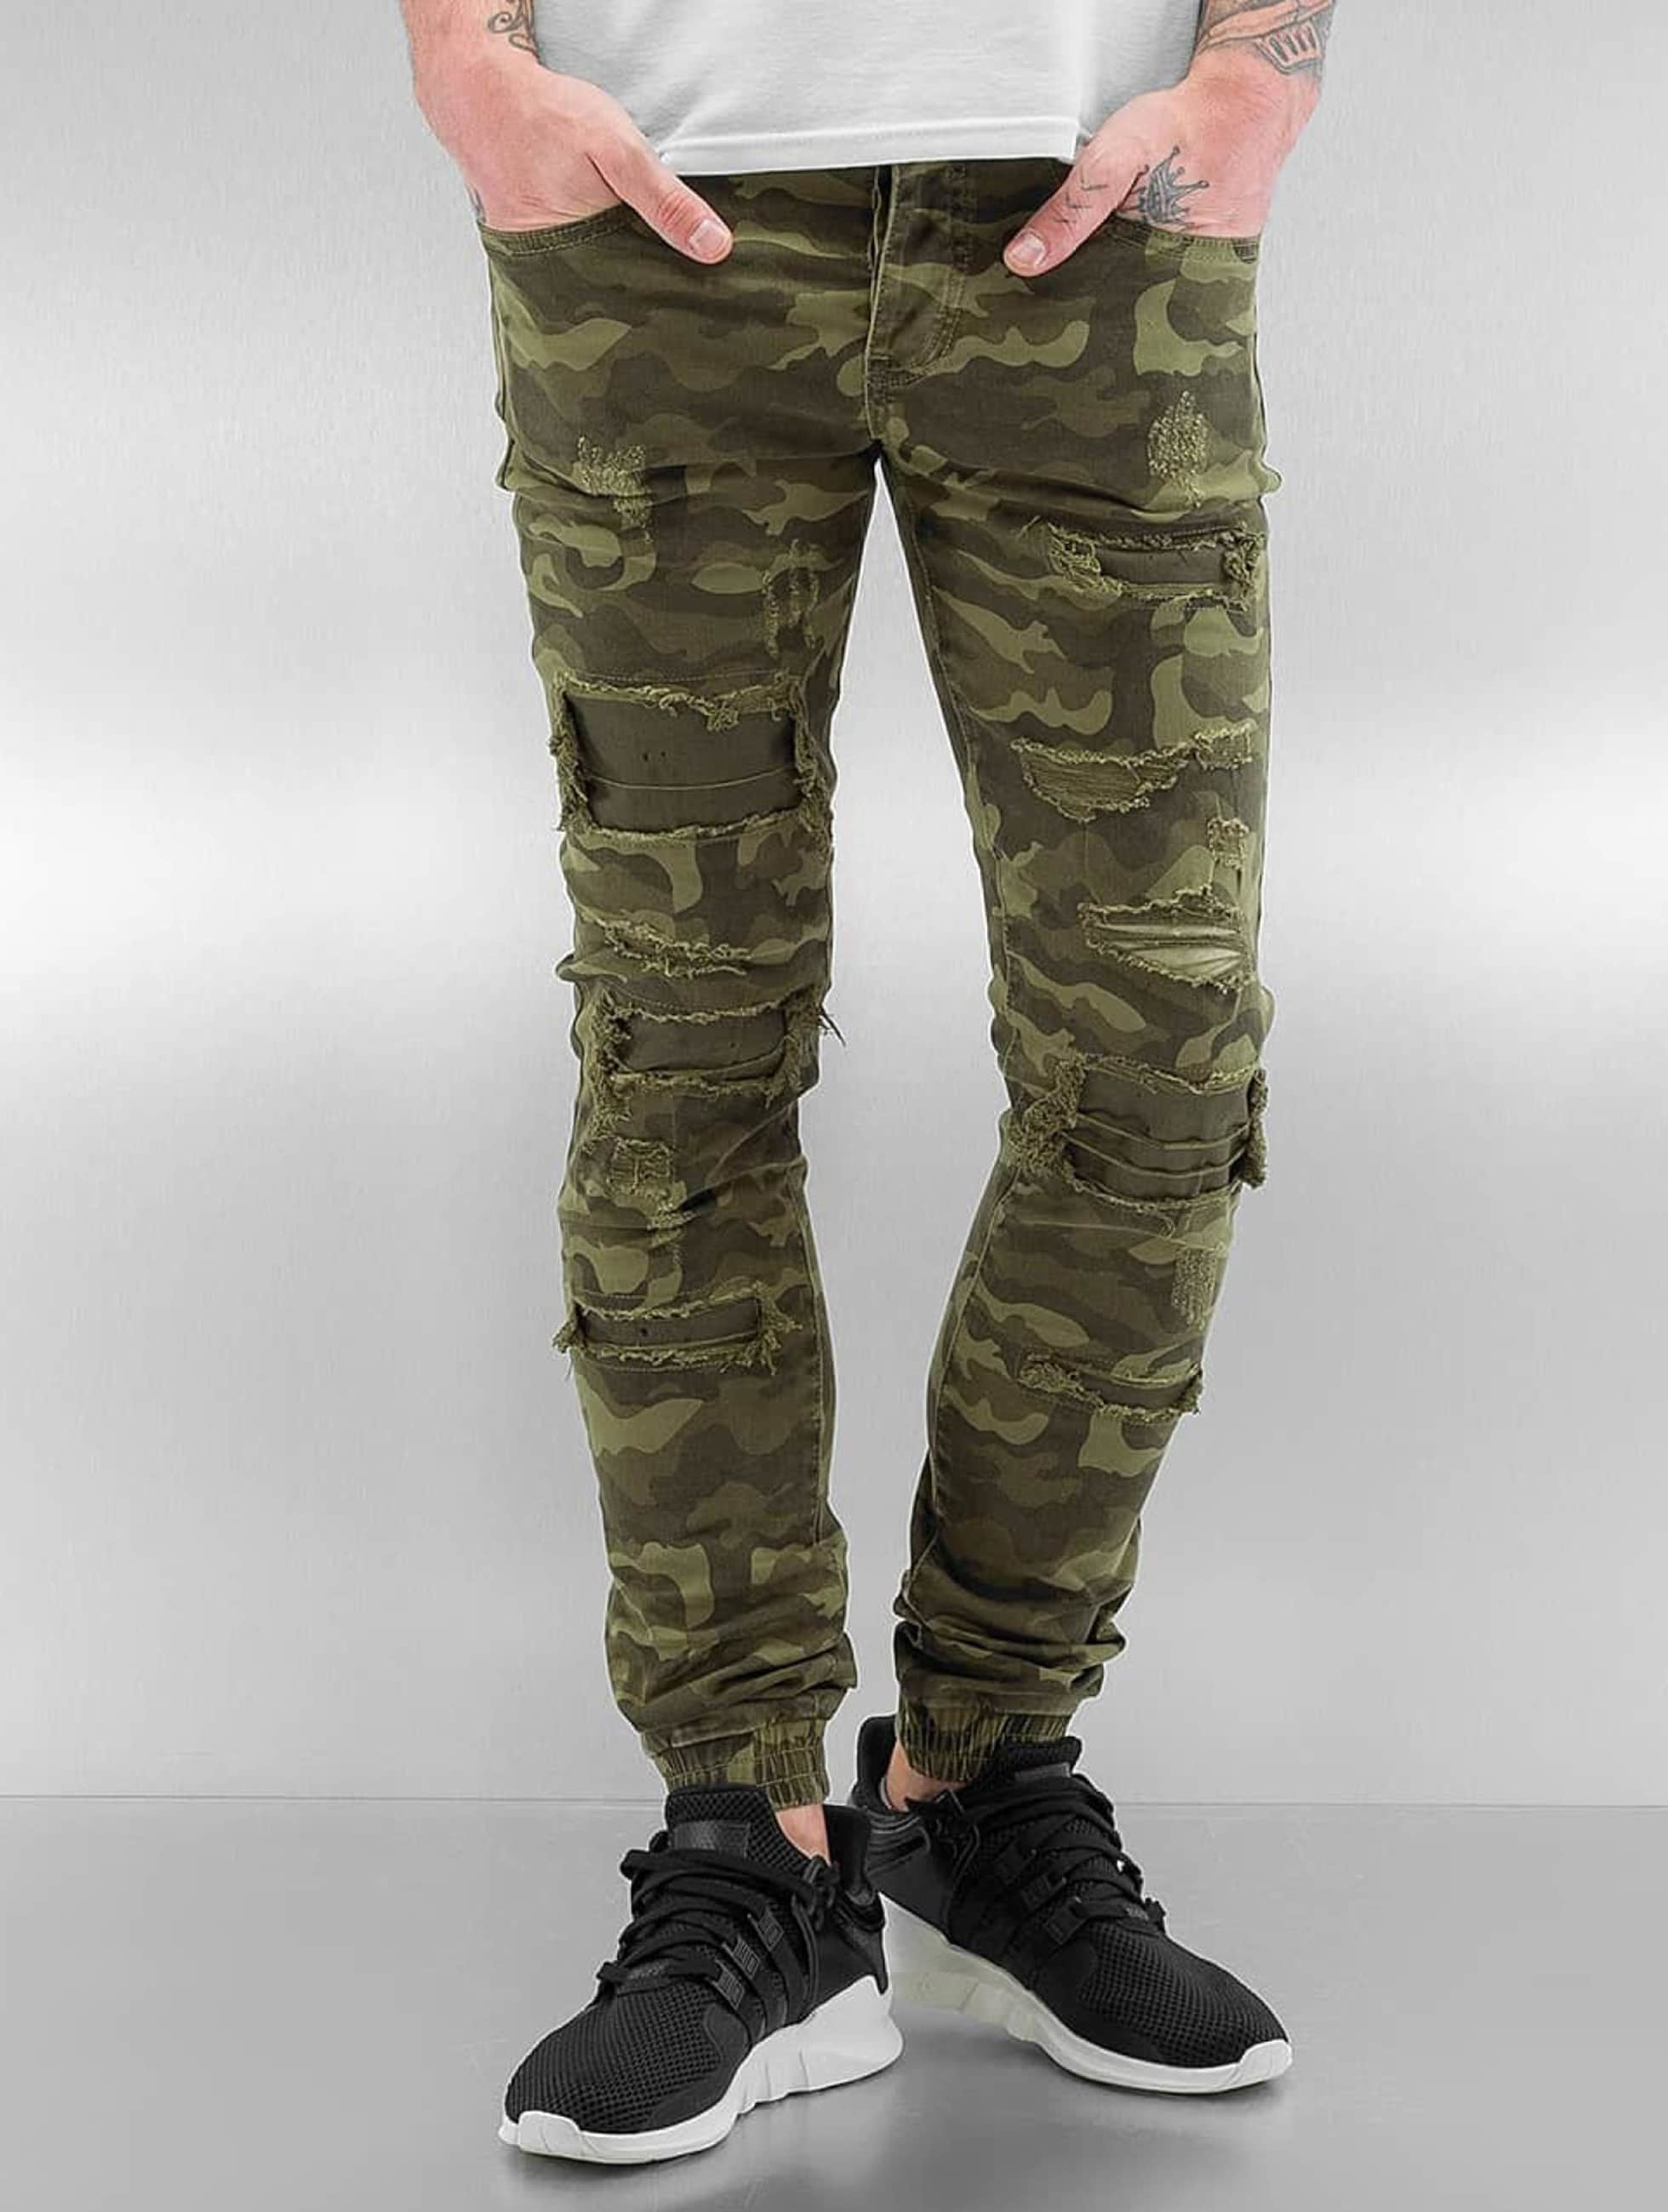 herren sixth june maenner skinny jeans destroyed camou in camouflage 03614320120439. Black Bedroom Furniture Sets. Home Design Ideas